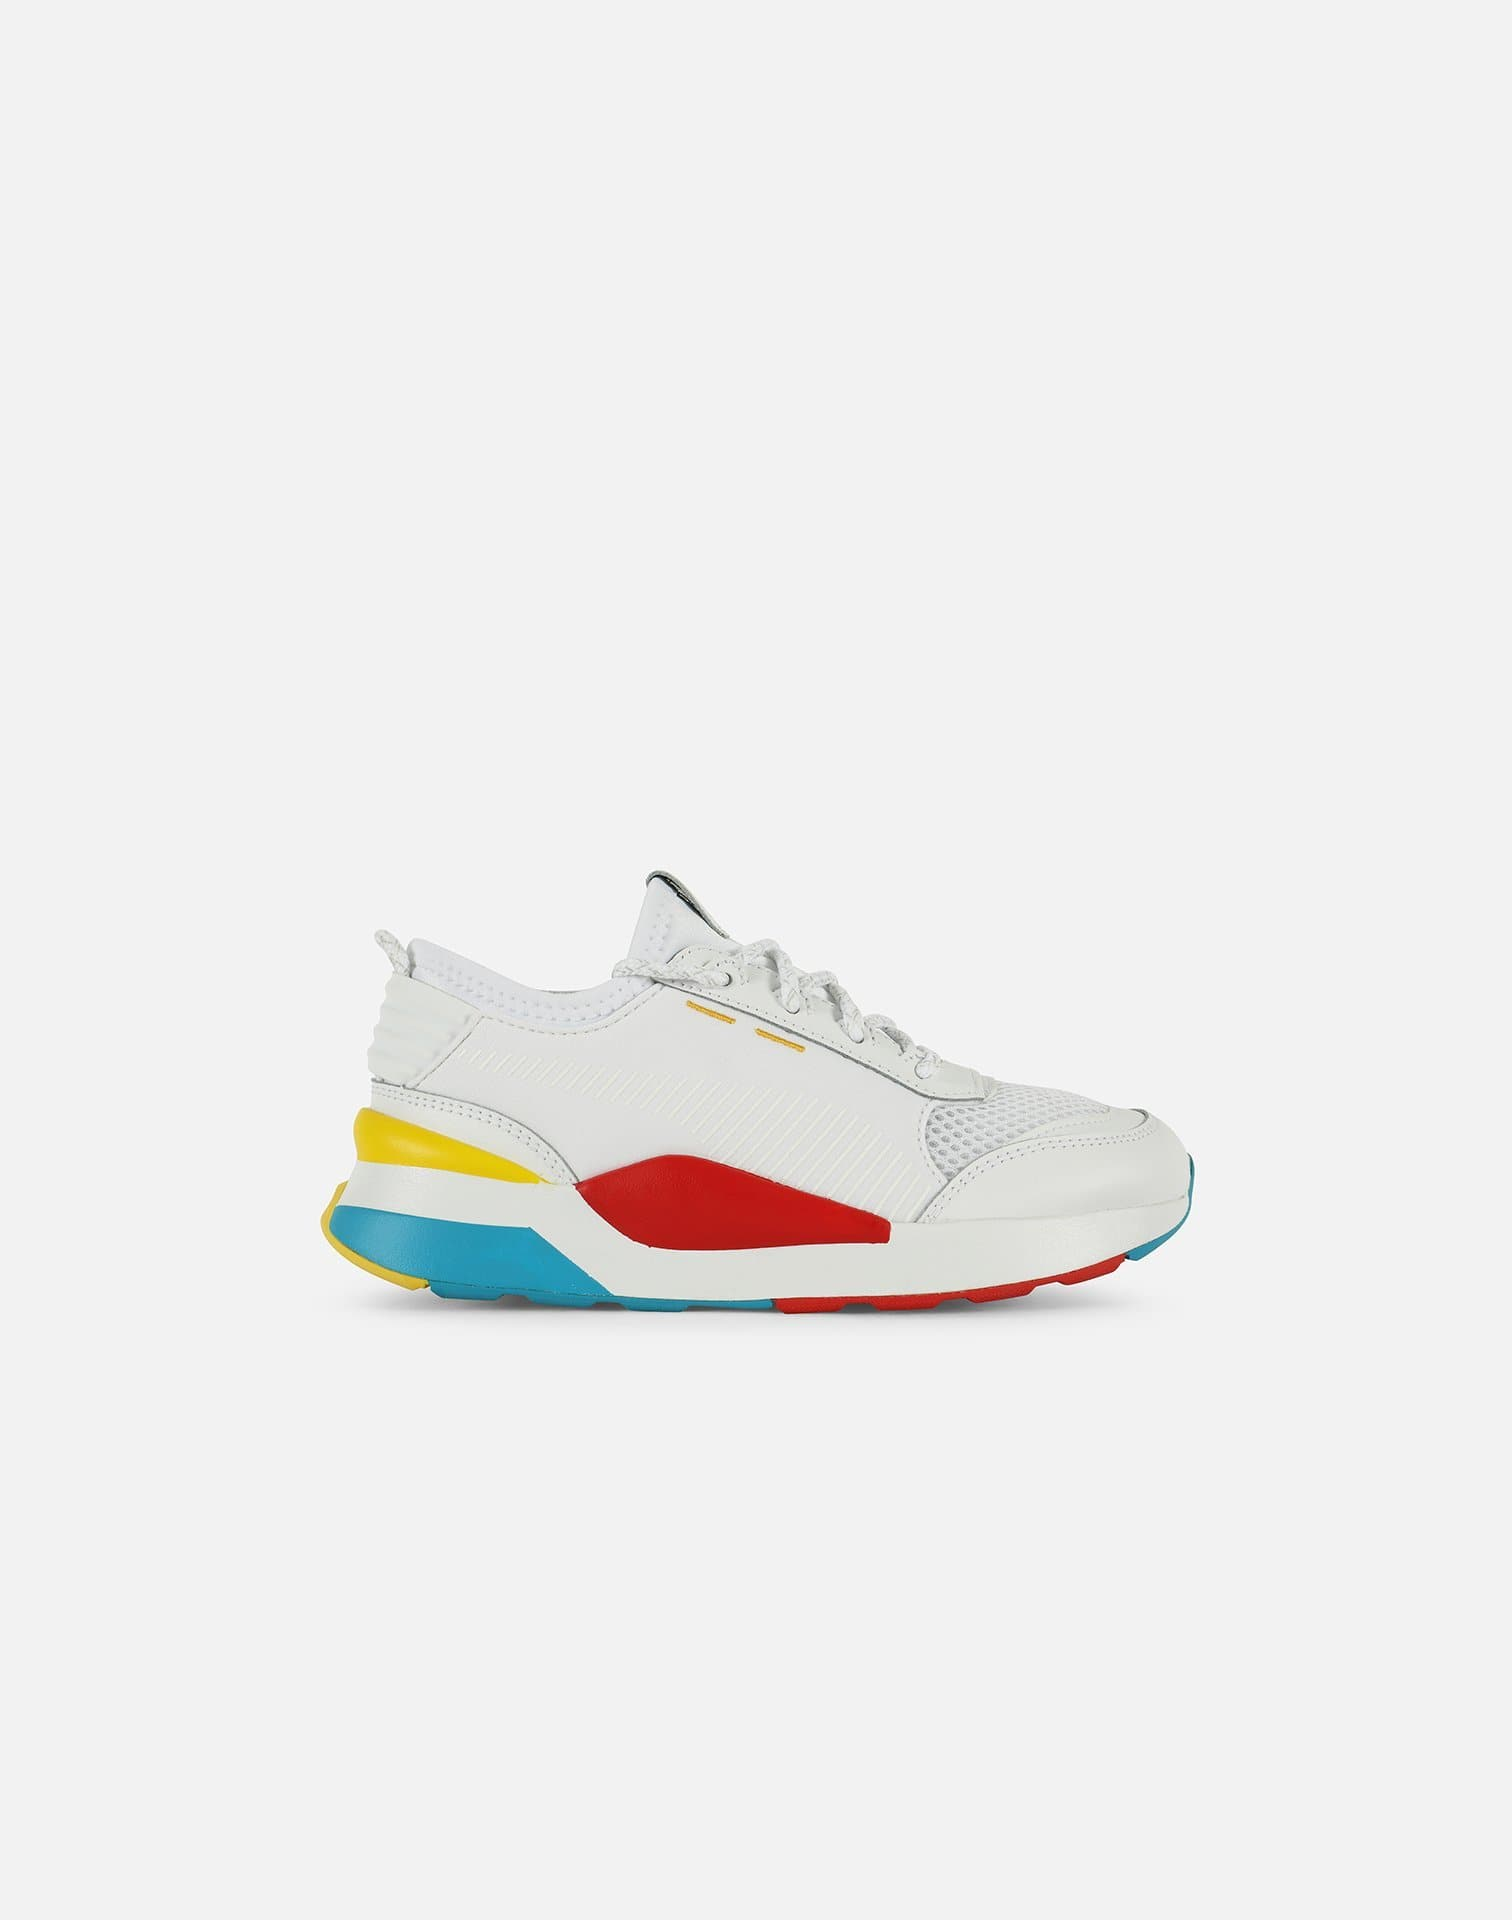 PUMA RS-0 'Play' Pre-School